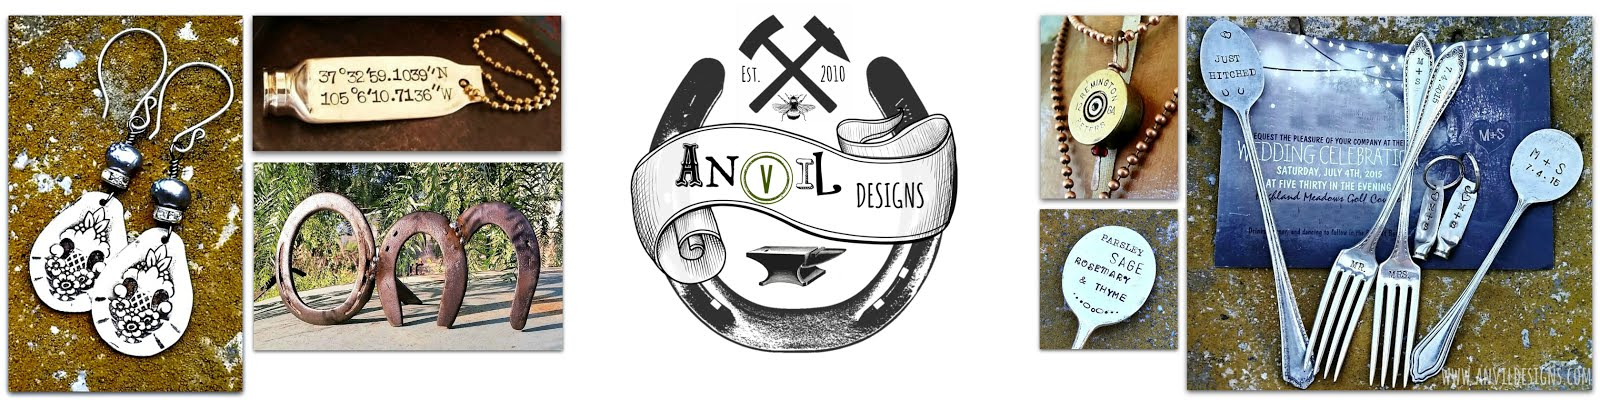 Anvil Designs